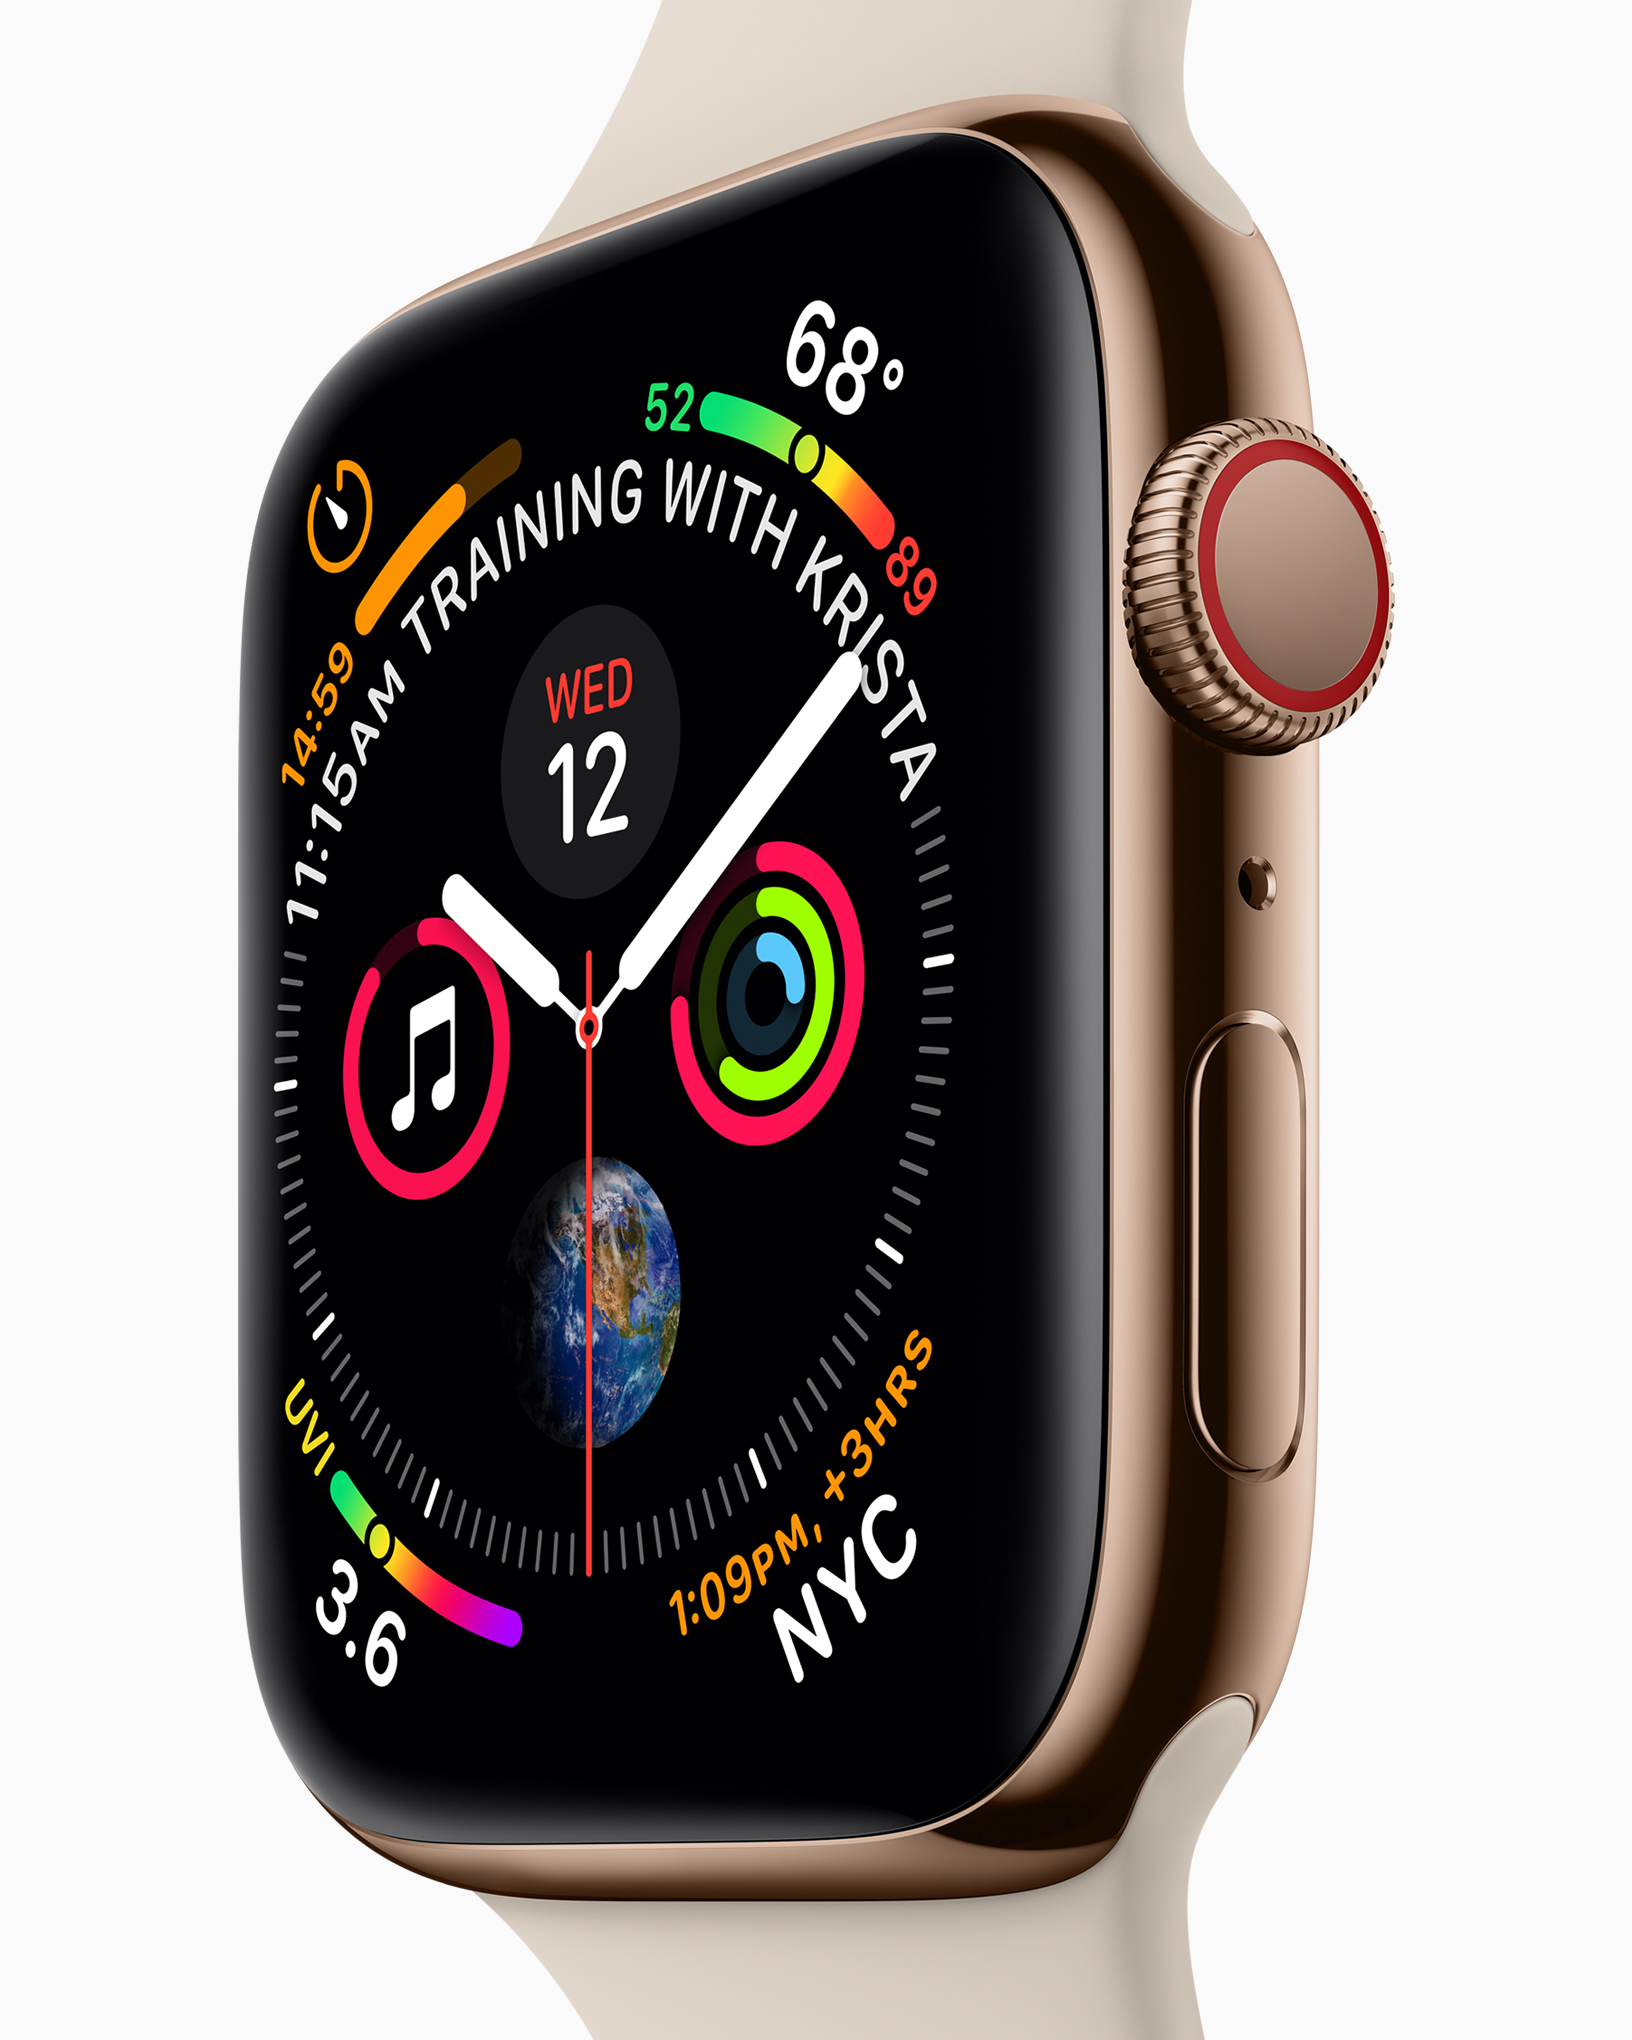 https://www.apple.com/newsroom/images/product/watch/standard/apple-watch-series4_watch-front-training_09122018_big.jpg.large_2x.jpg